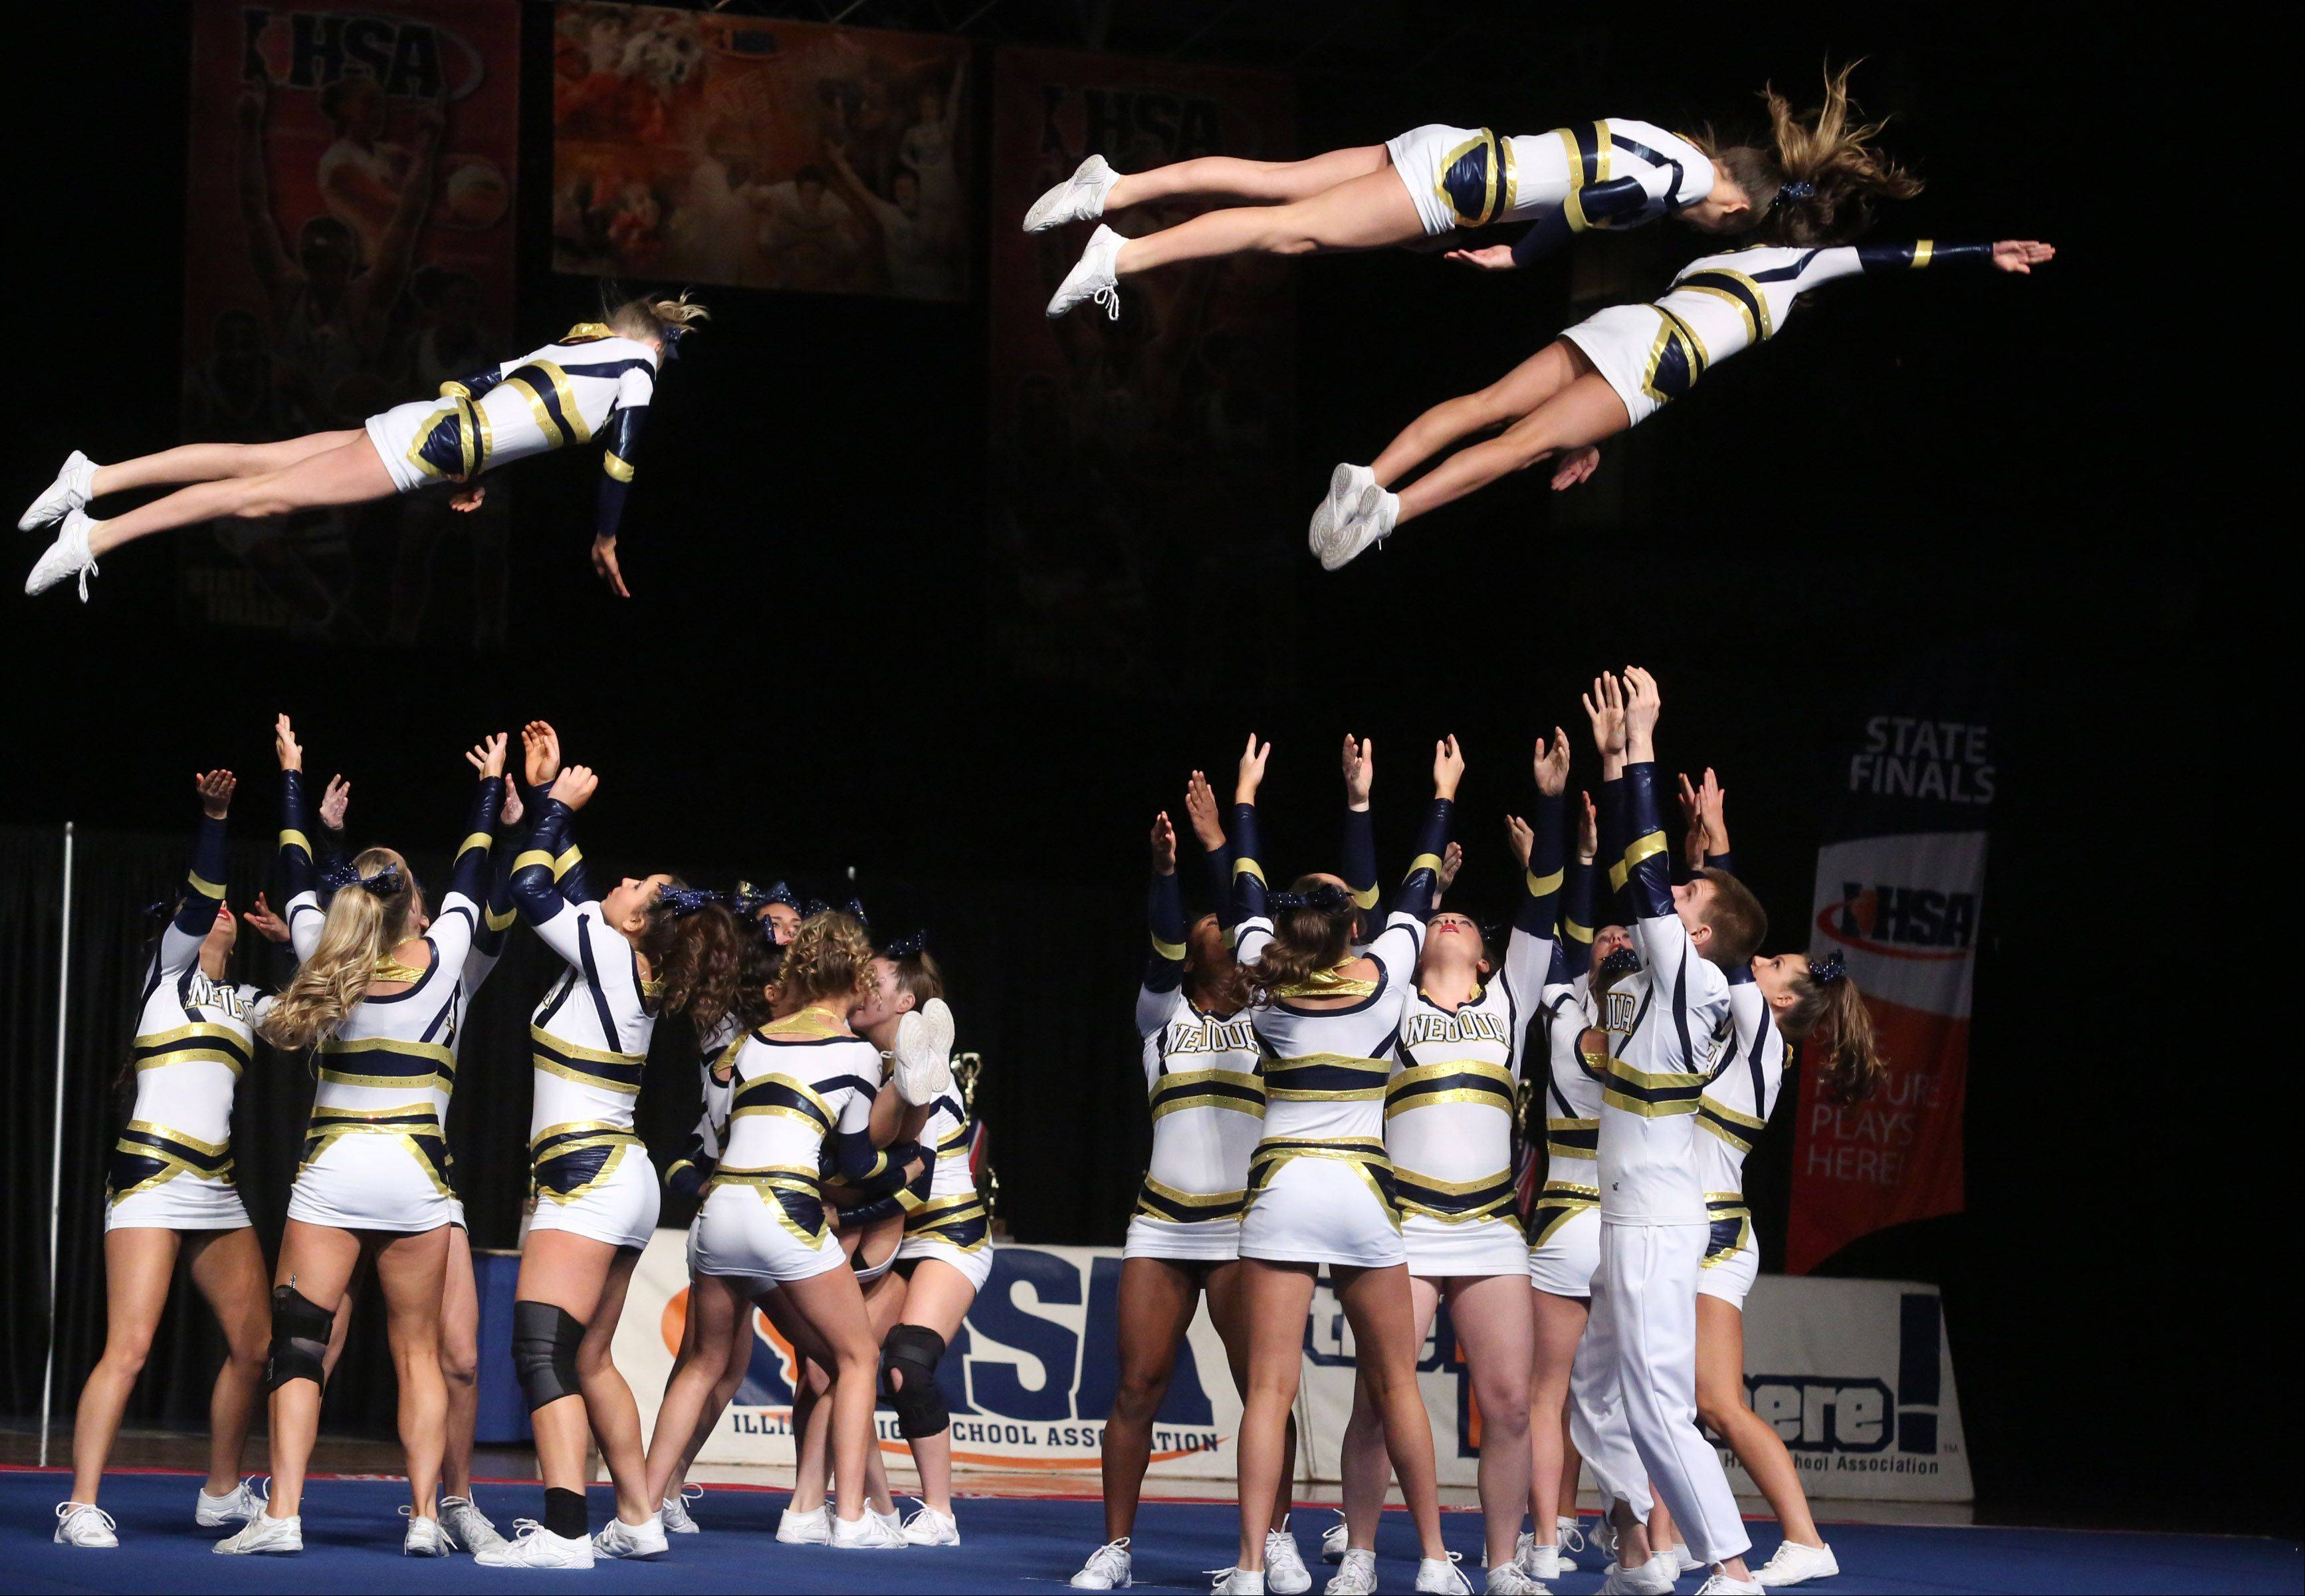 Neuqua Valley High School performs in the large team category in preliminary rounds of IHSA state cheerleading competition on Friday in Bloomington.